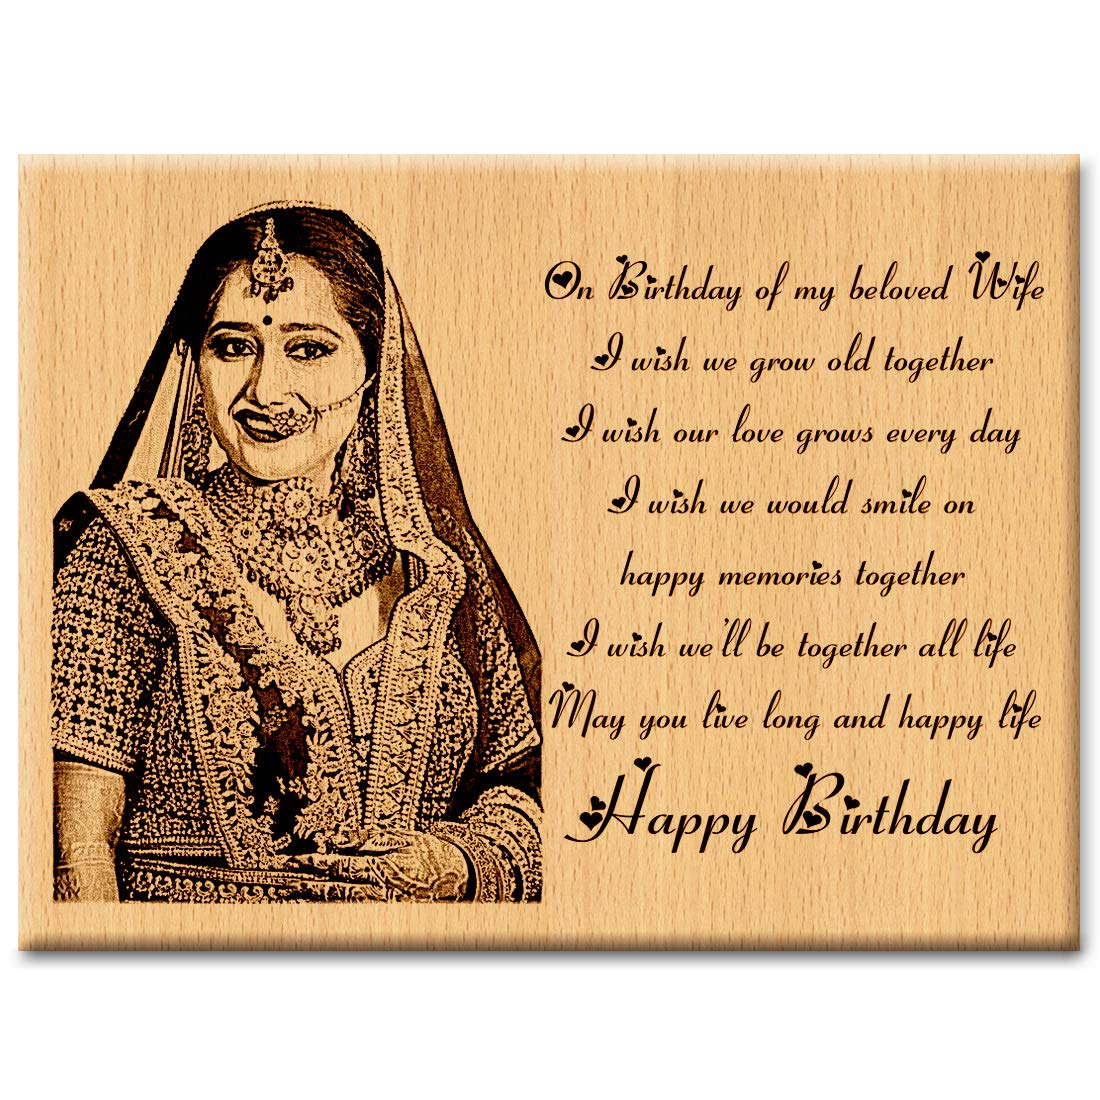 Buy Incredible Gifts India Unique Personalized Engraved Photo Plaque Gift For Wife 6 X 8 Inches Wood Beige Online At Low Prices In India Amazon In